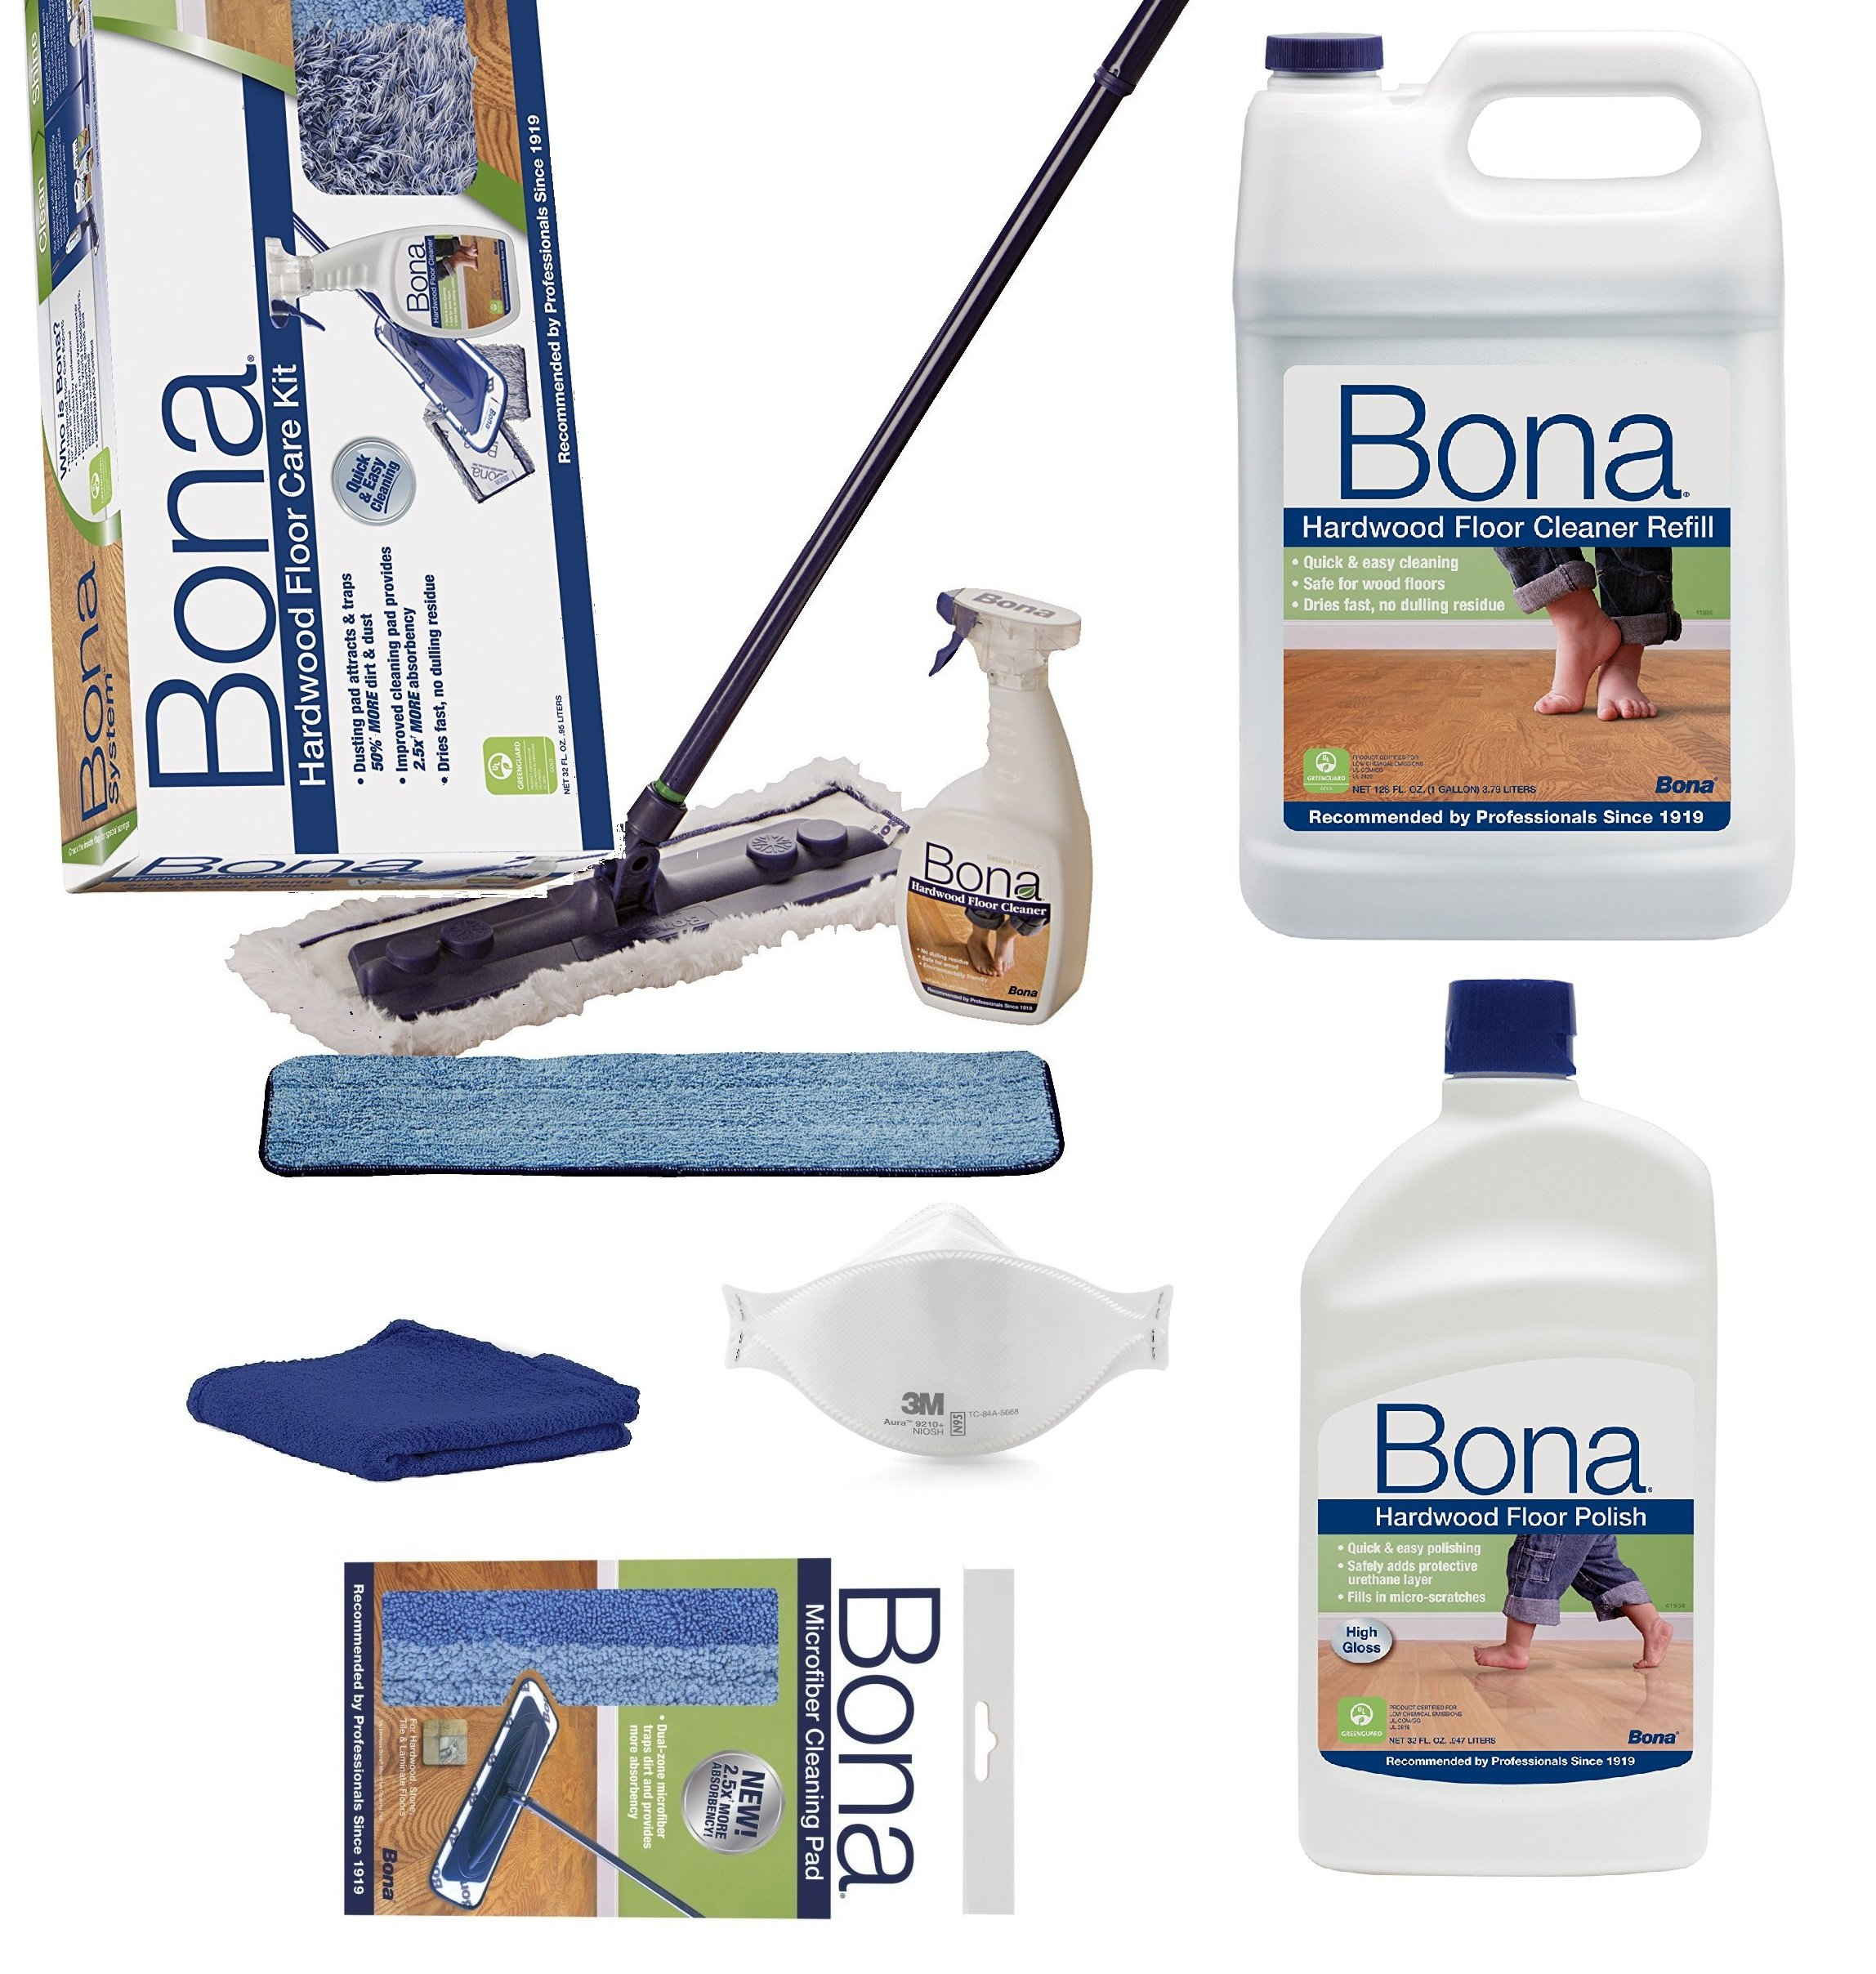 Bona Hardwood Floor Spray Mop, includes 28.75 oz. Cartridge (Bona Family PACK)